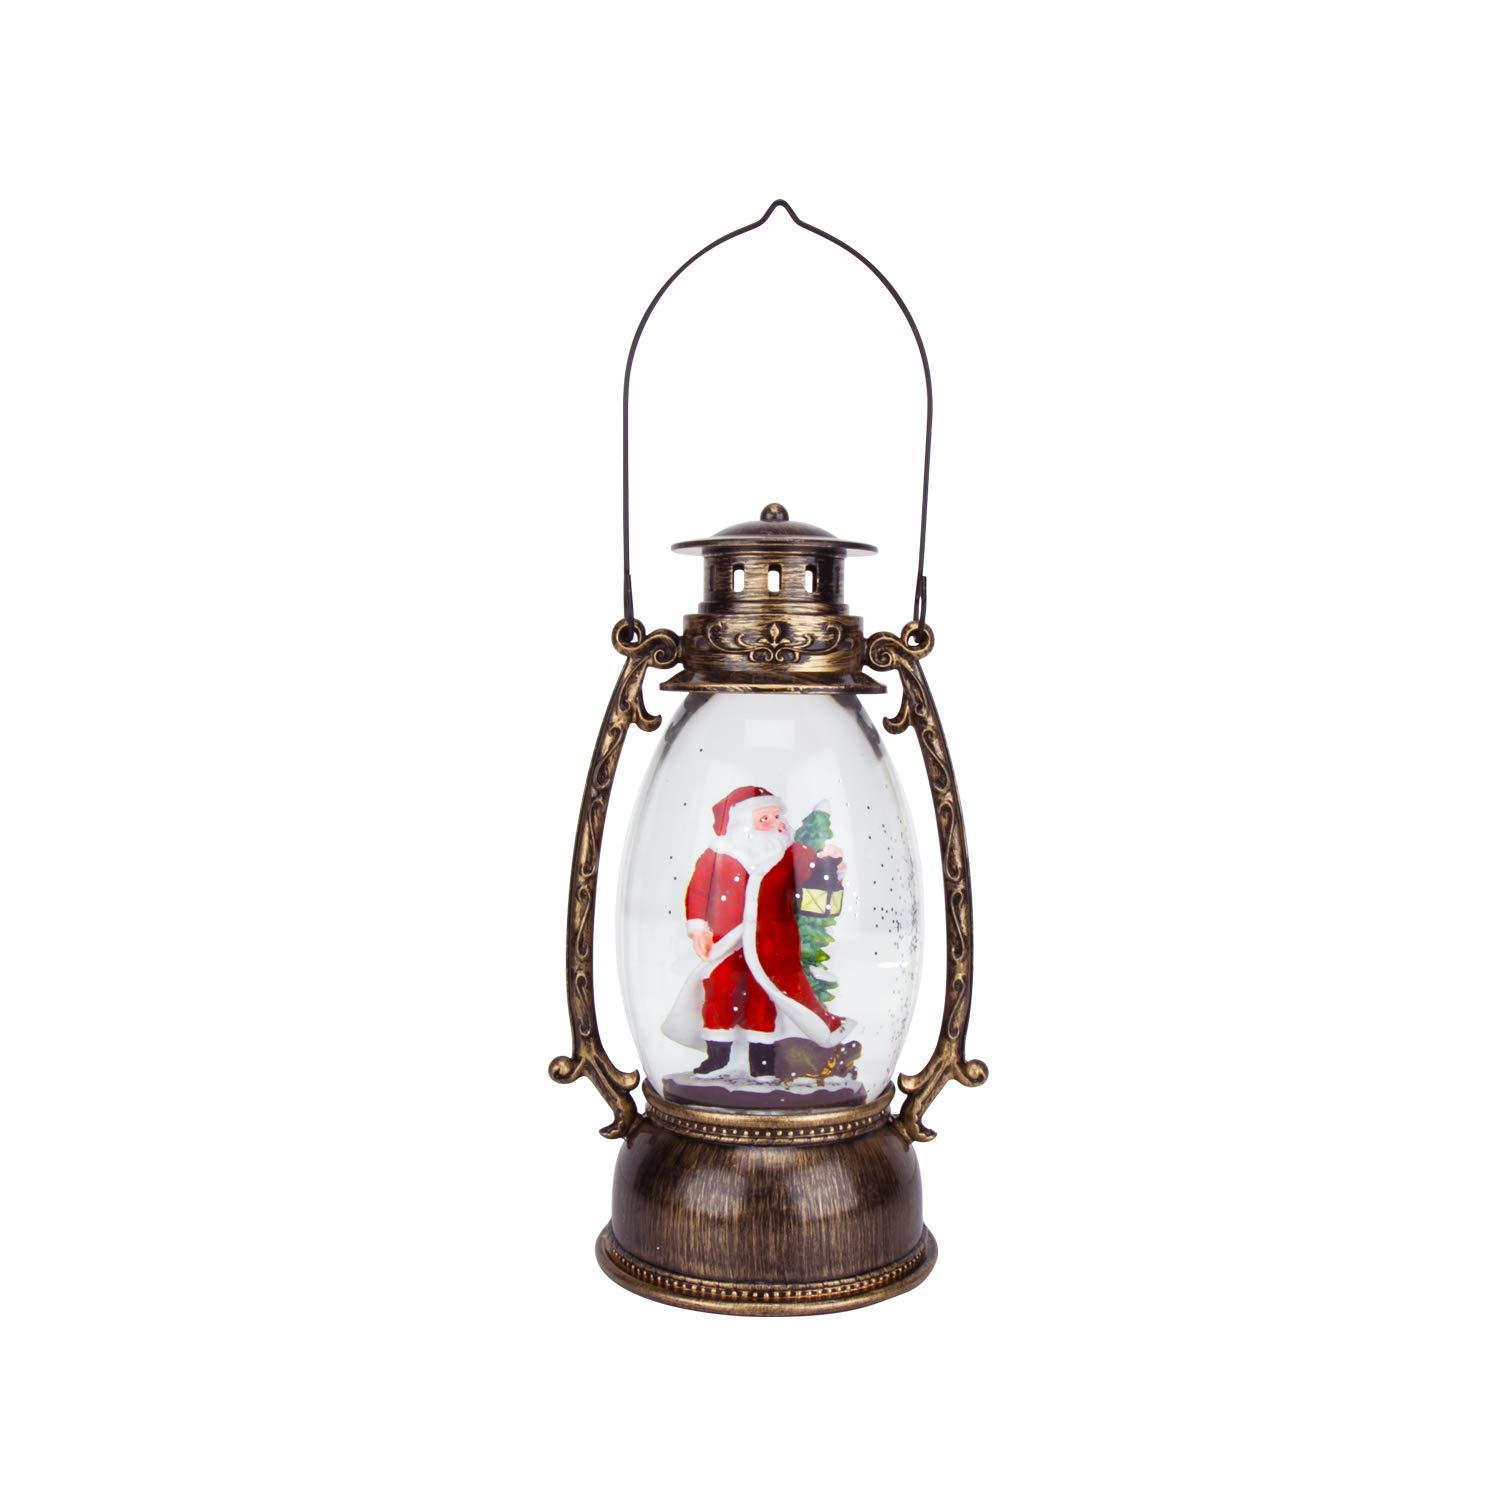 Evelyne GMT-10315 Santa Claus Christmas Snow Globes Collectibles - Battery Operated LED Lighted Swirling Glitter Water Lantern - Christmas Decorations for The Home (No Music)